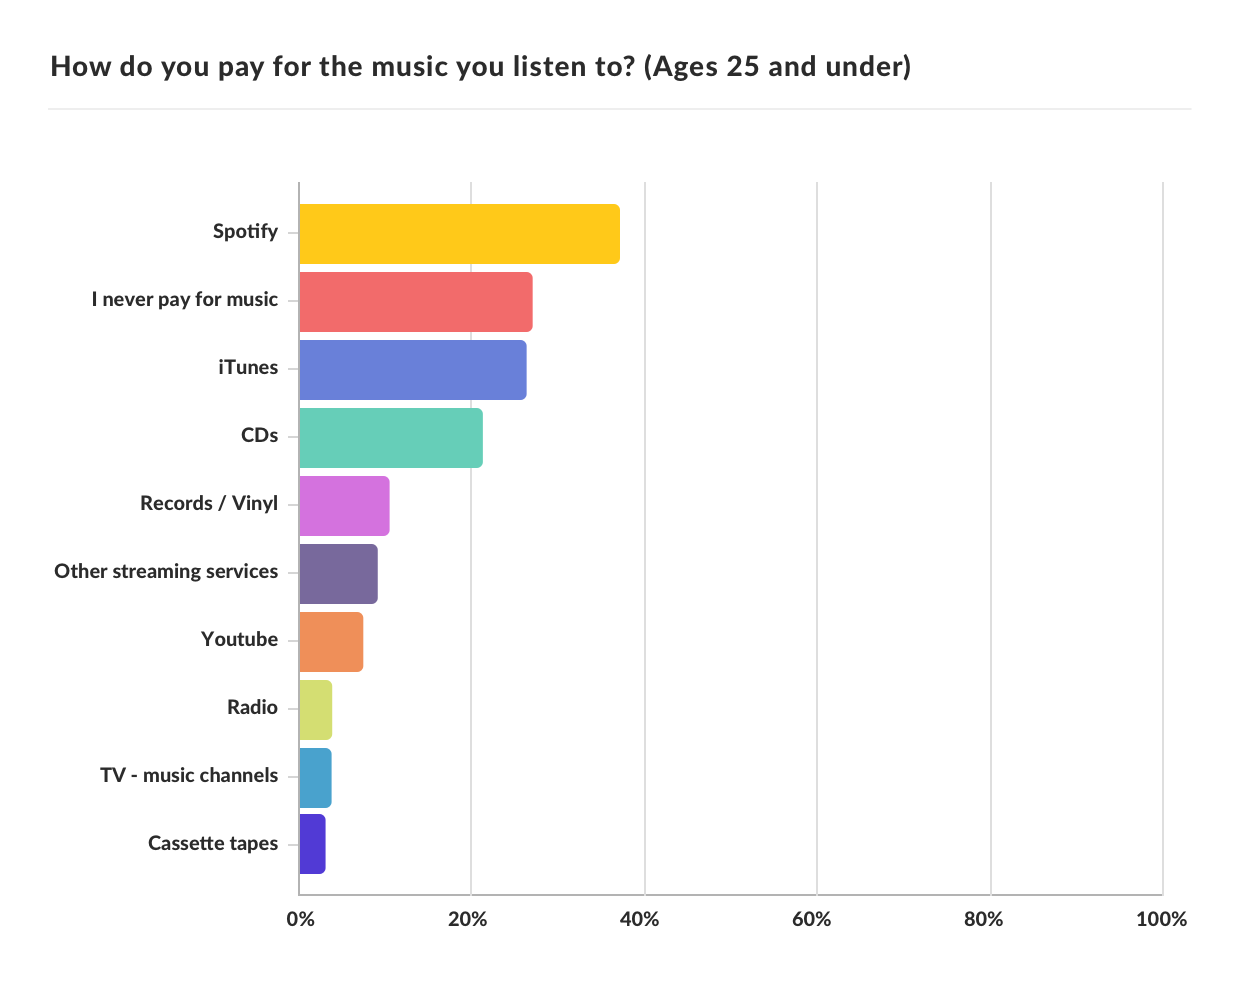 Generation Z loves Spotify, older generations less convinced